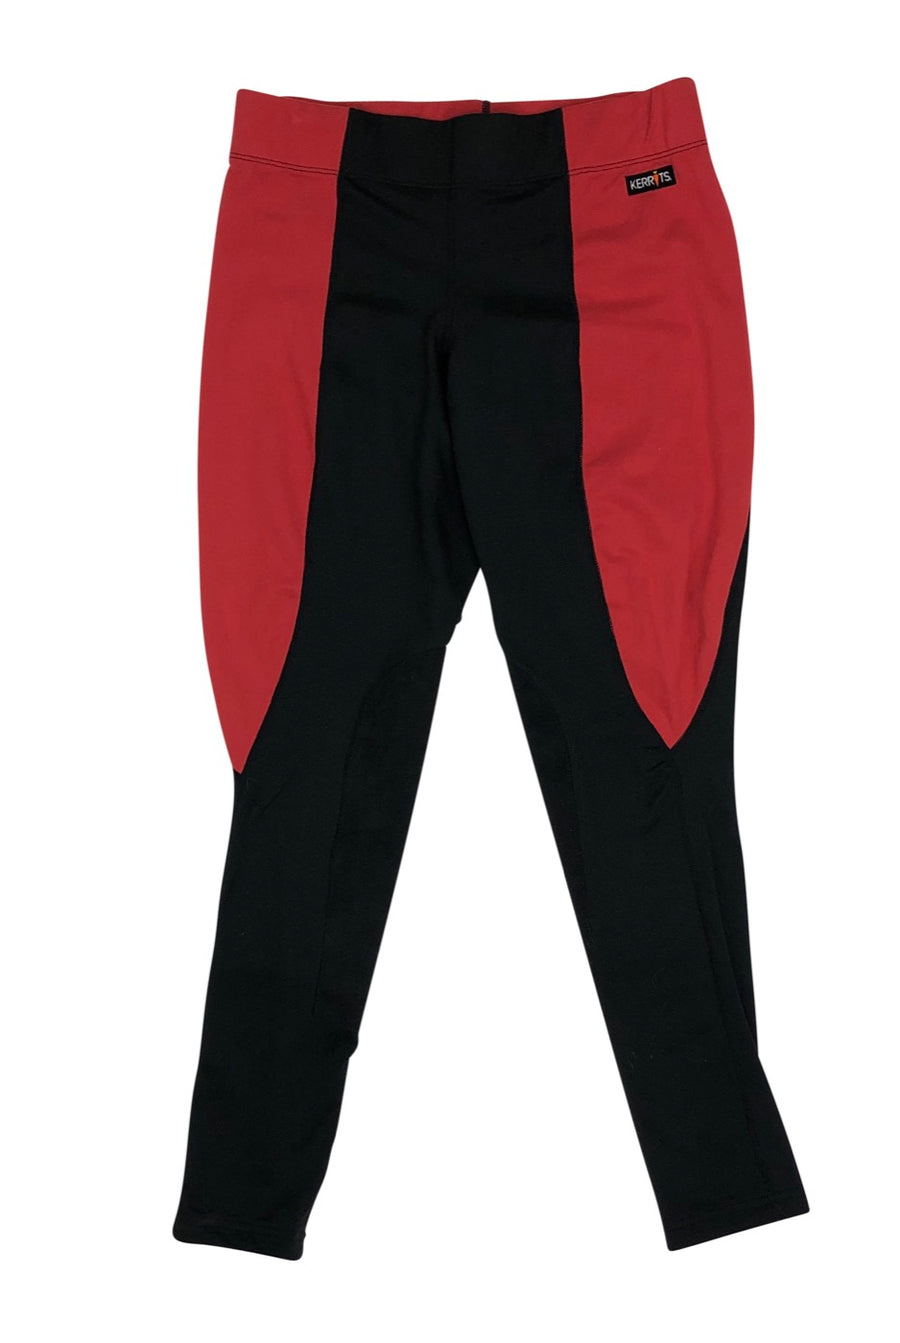 Kerrits Flow-Rise Performance Tights in Black and Red